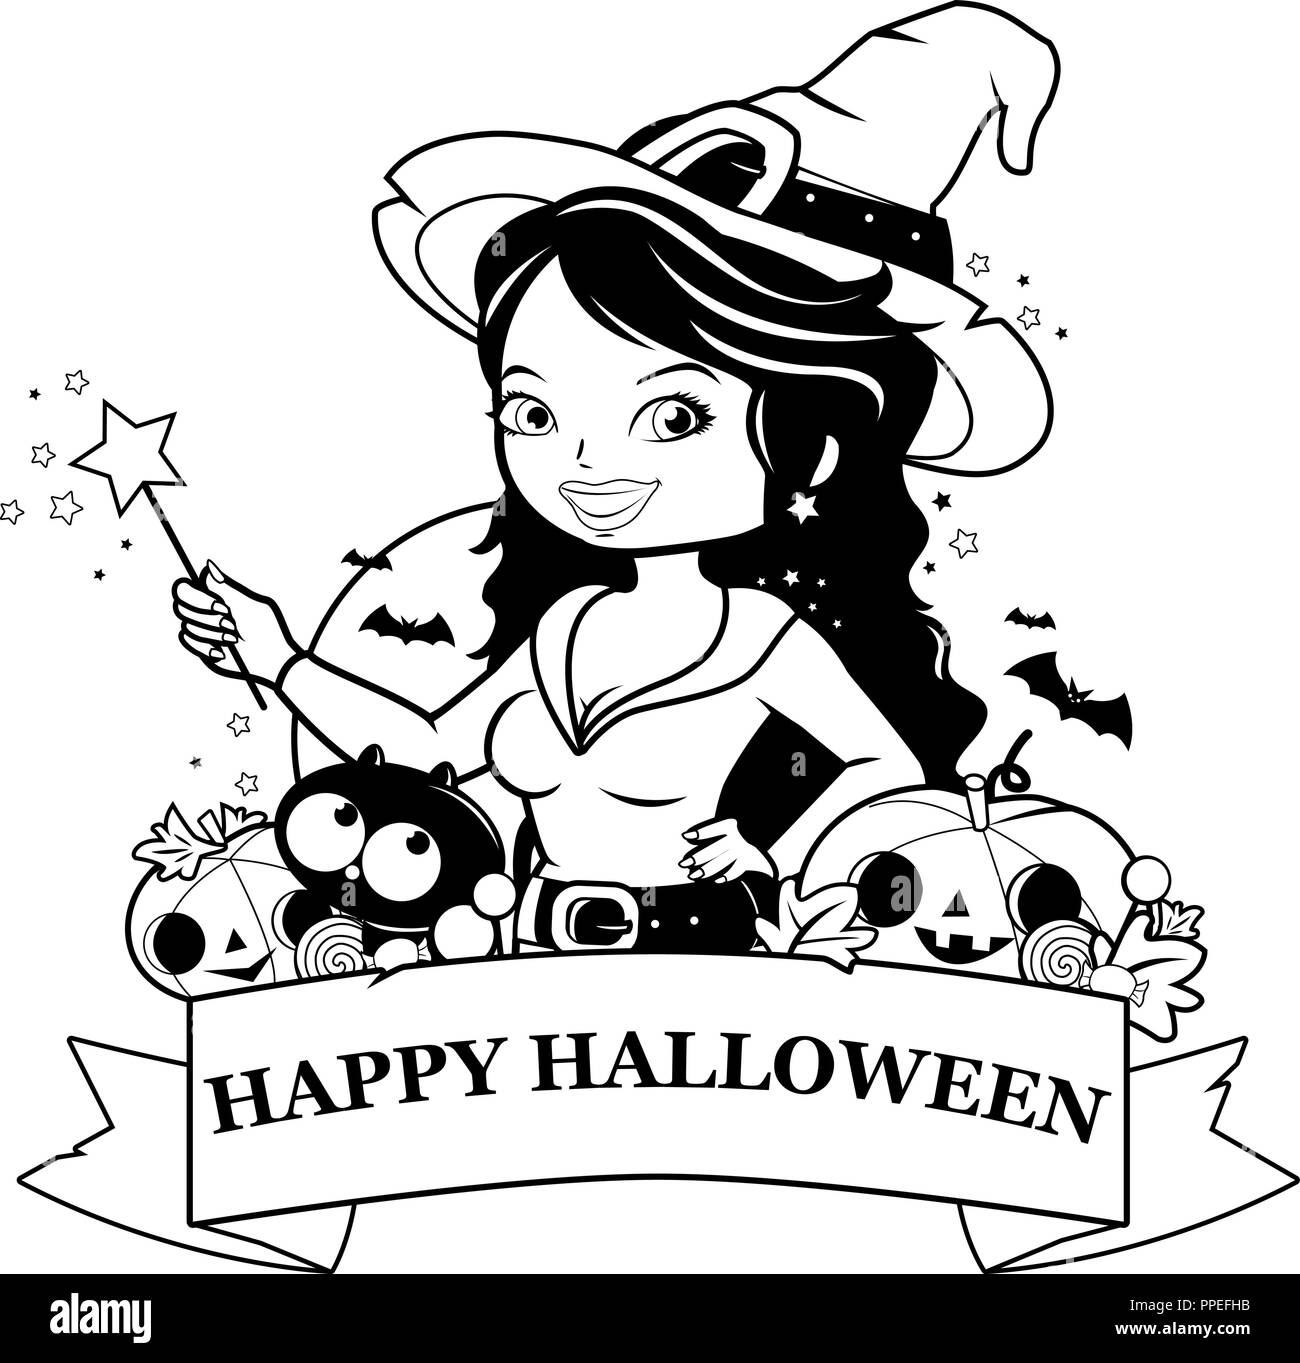 Halloween witch, pumpkins and treats. Black and white coloring book page - Stock Image